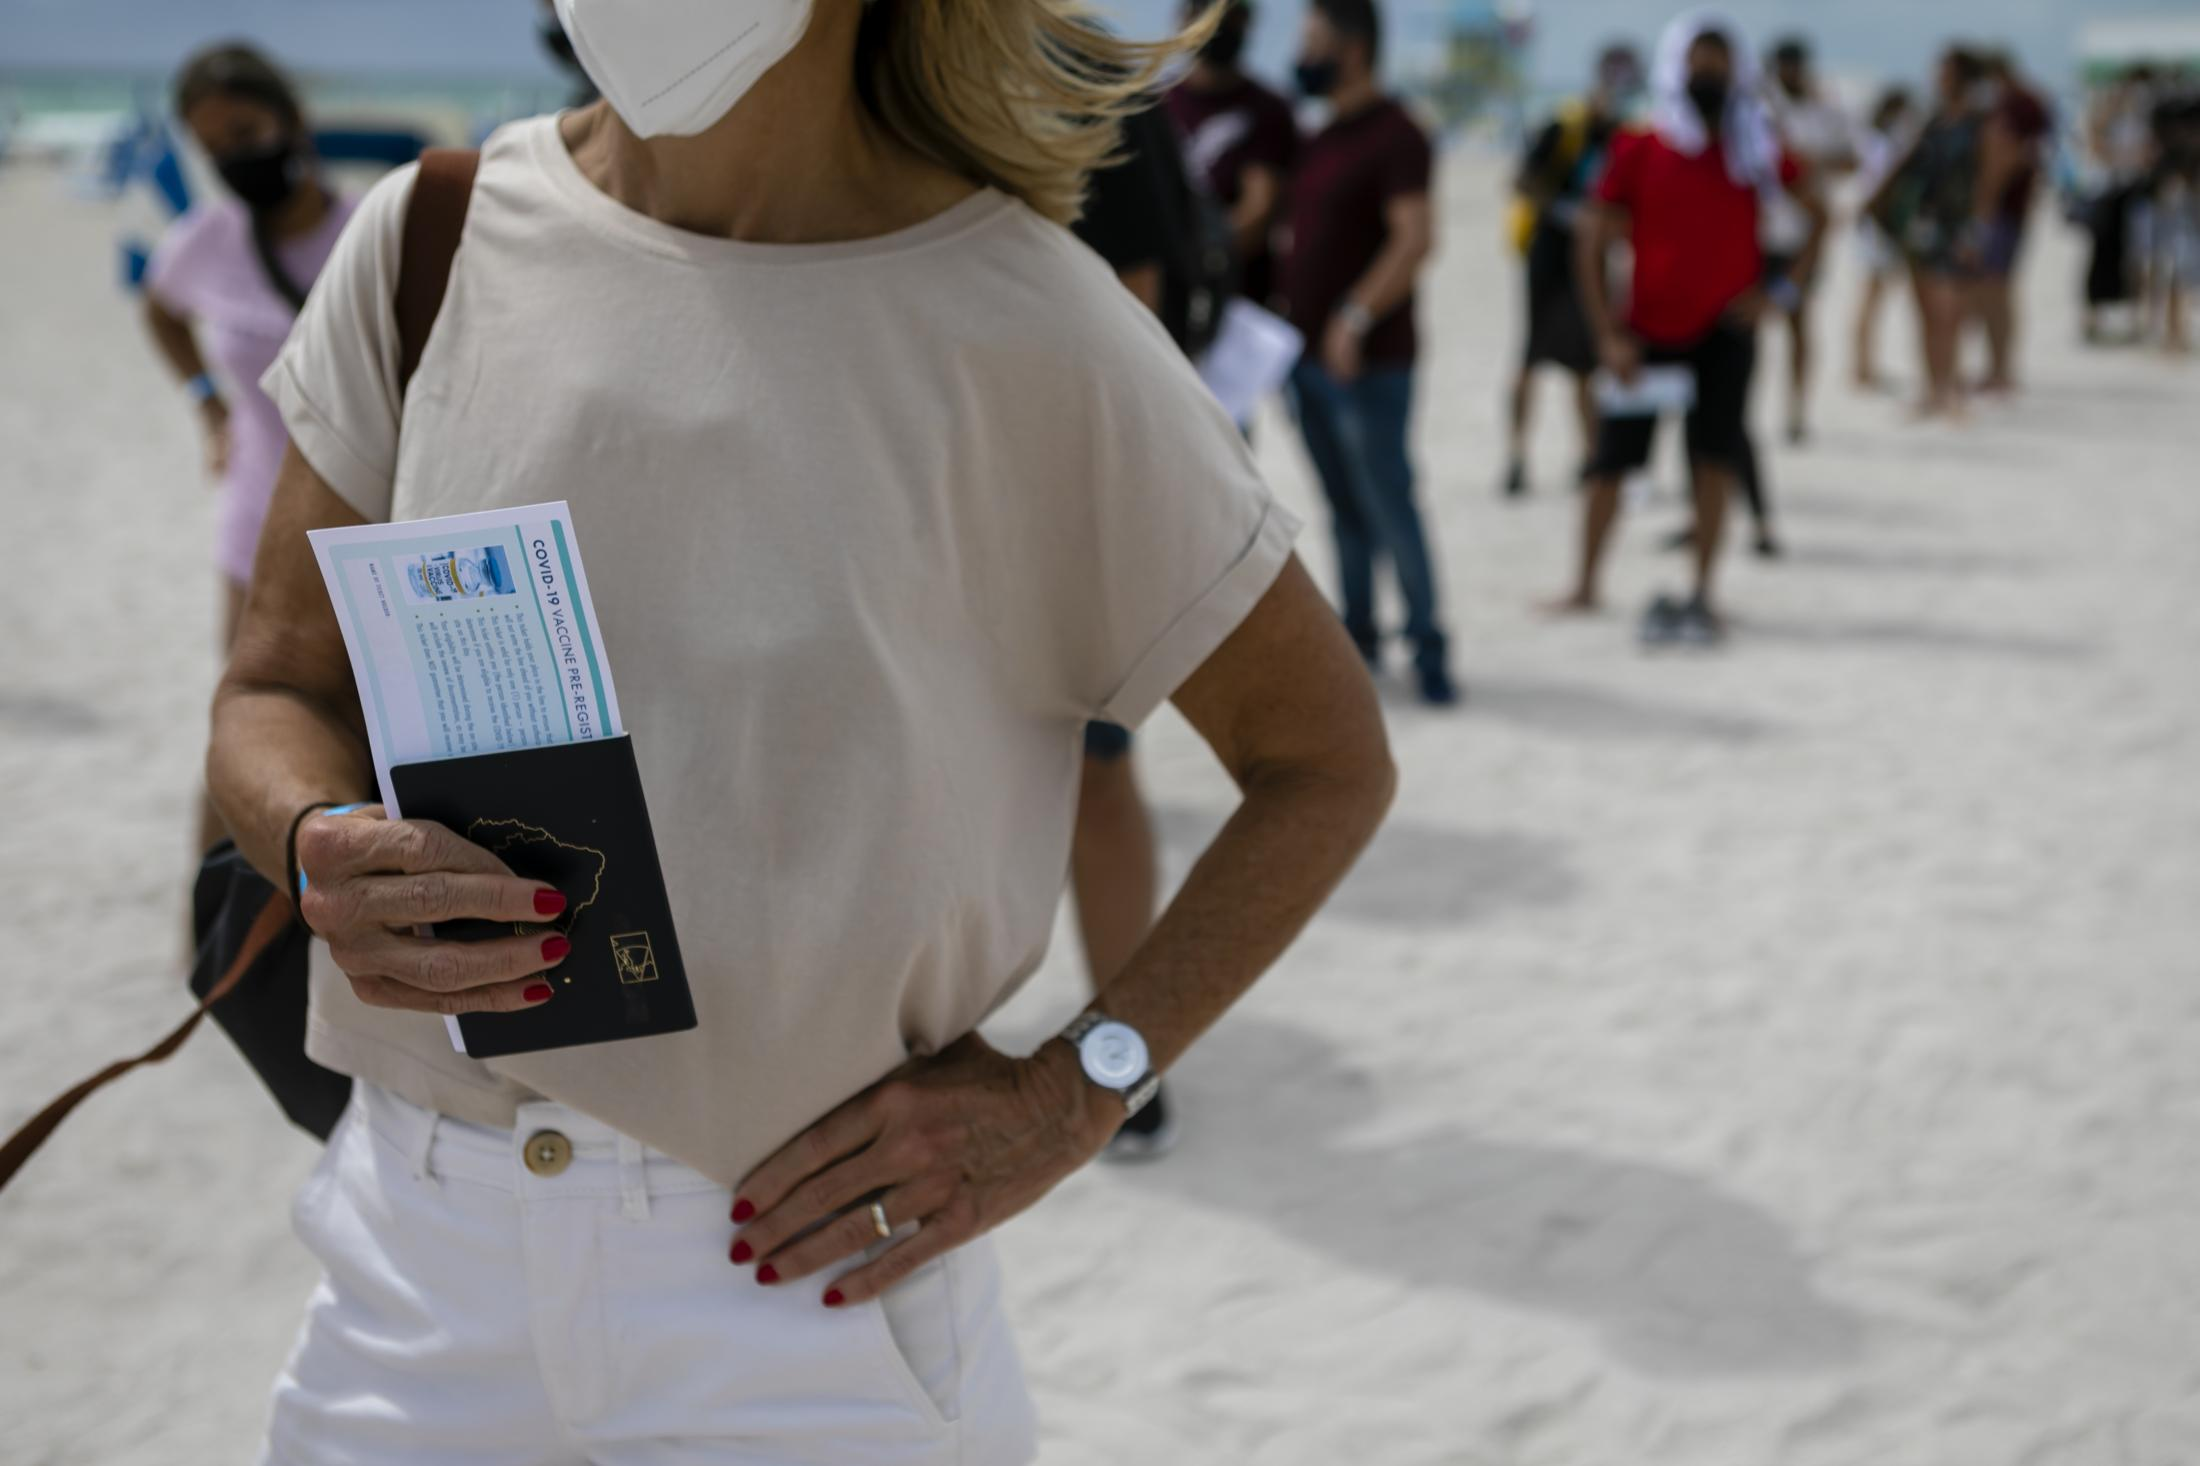 A woman holds her passport as she waits in line to get Johnson & Johnson COVID-19 vaccine at a pop-up vaccination center at the beach, in South Beach, Florida, on May 9, 2021. Eva Marie UZCATEGUI / AFP